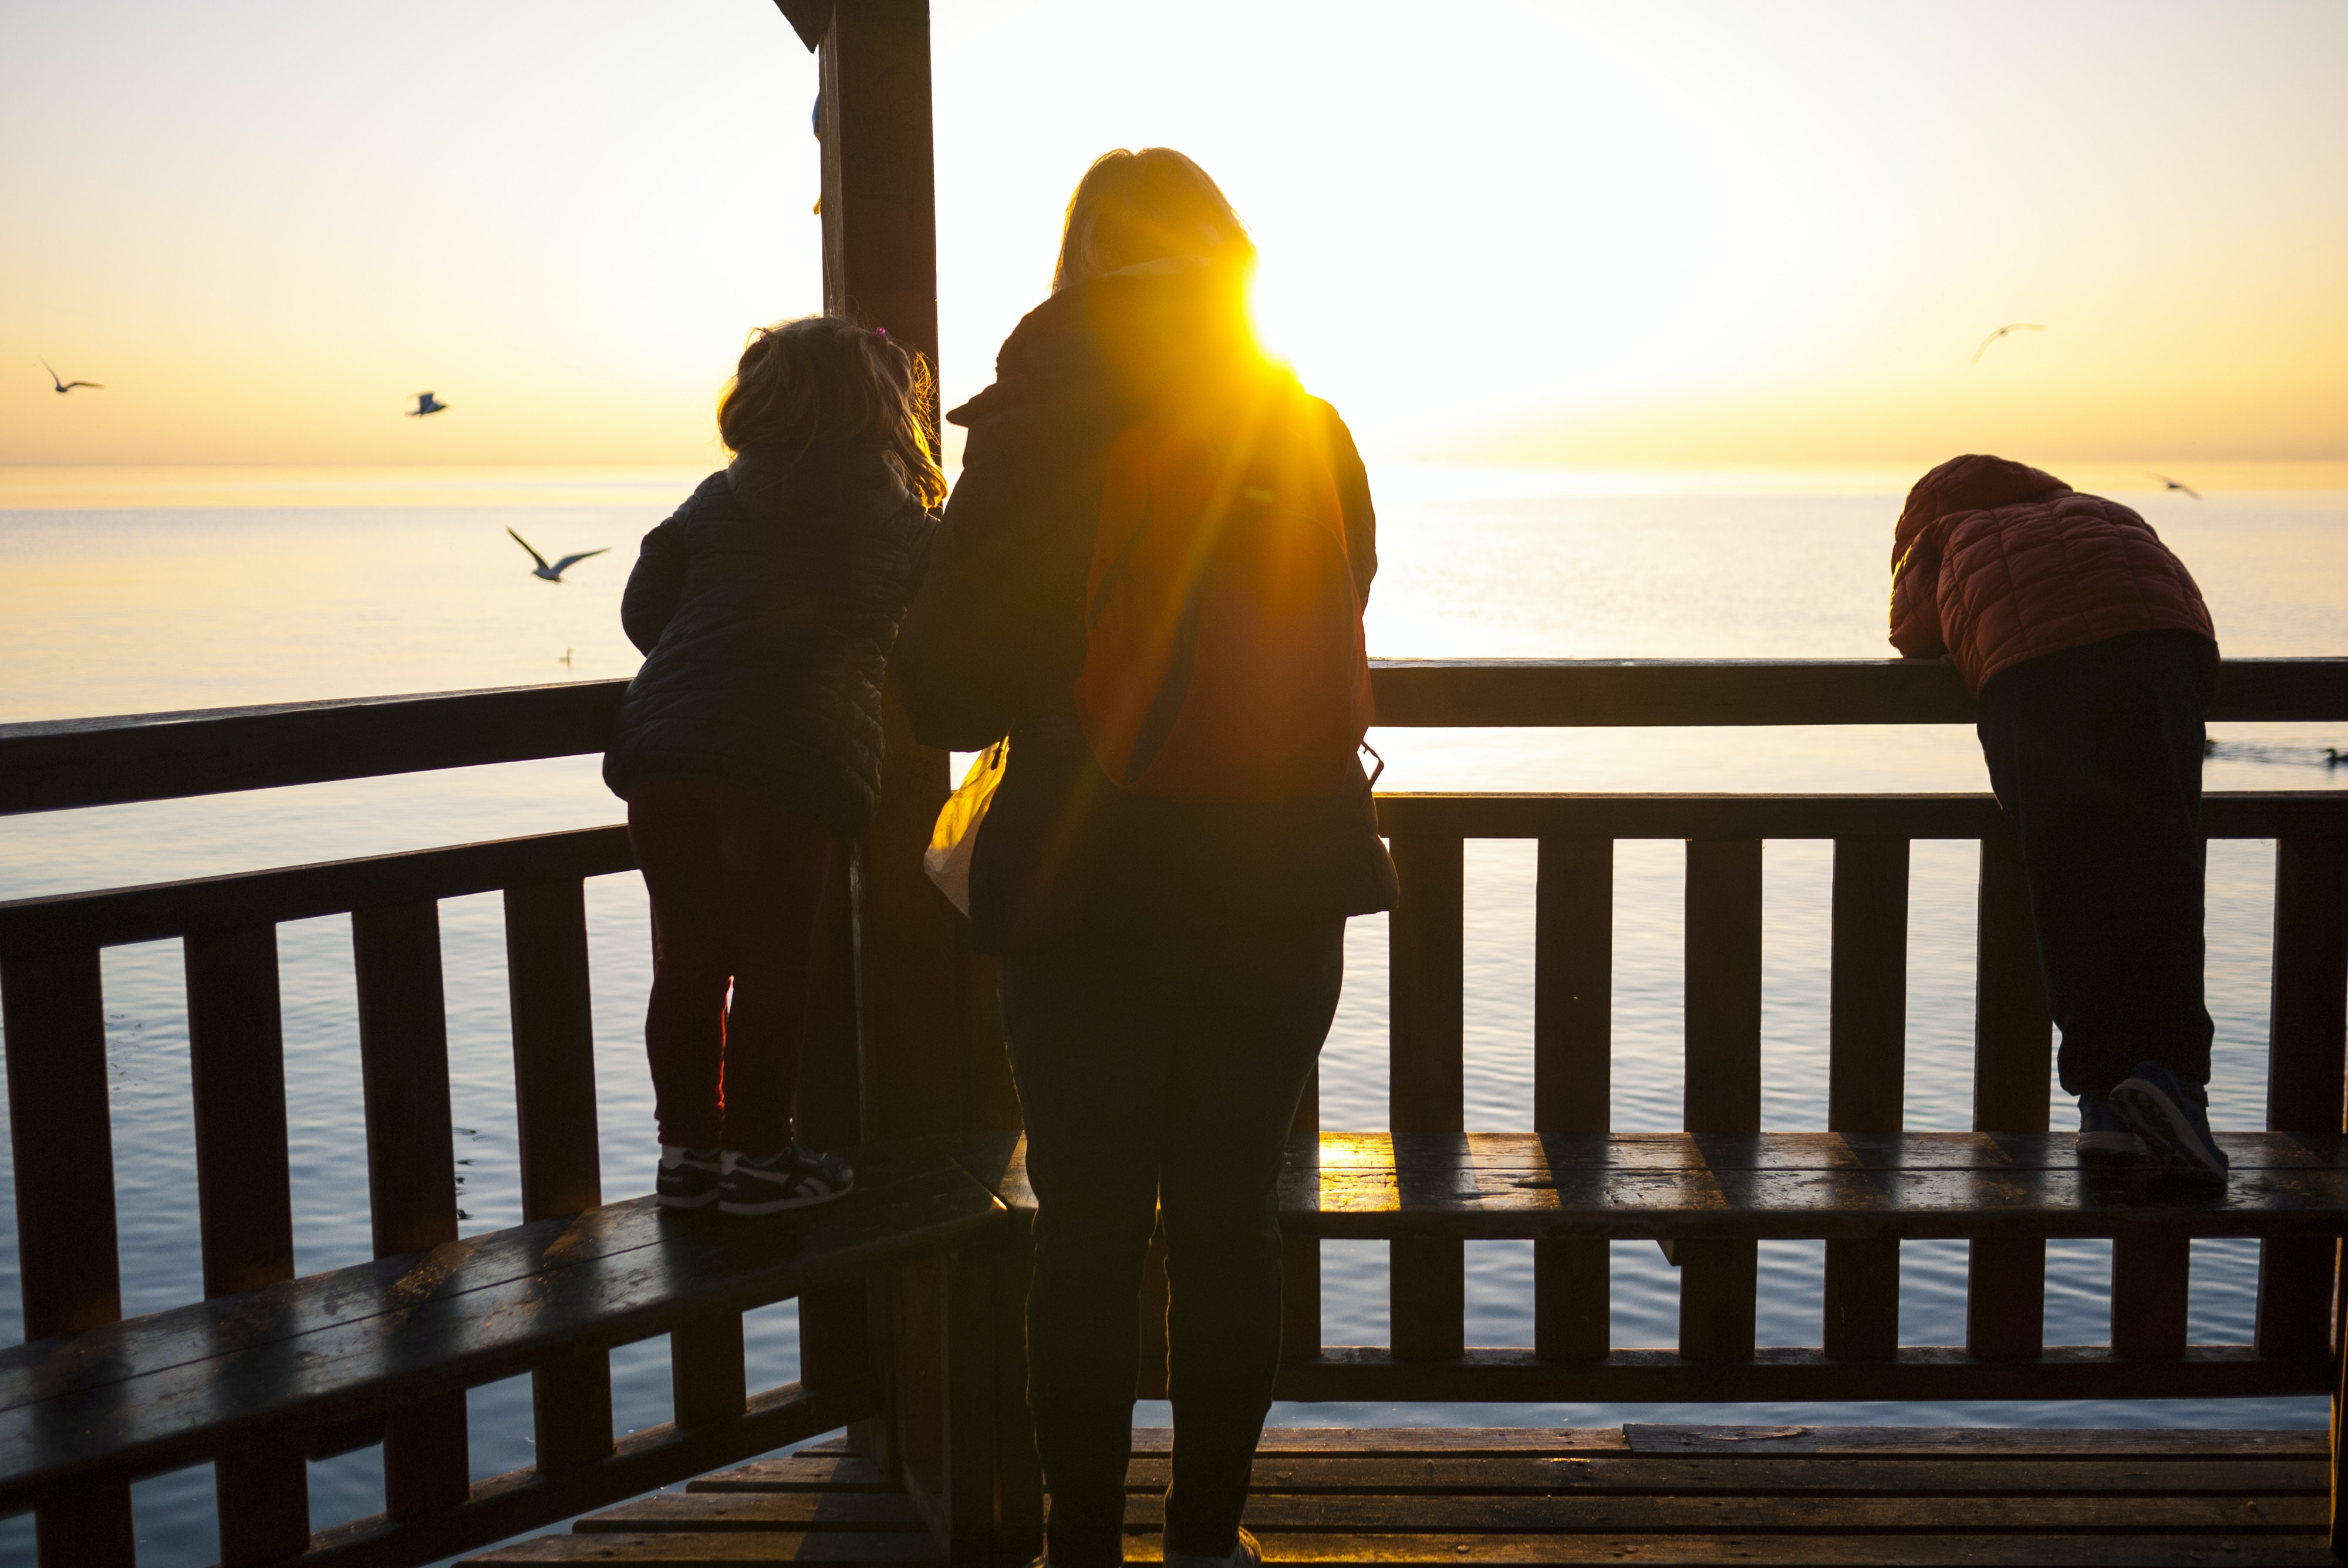 A mother and her two children watch the seagulls and the sunset over the ocean from a pier.